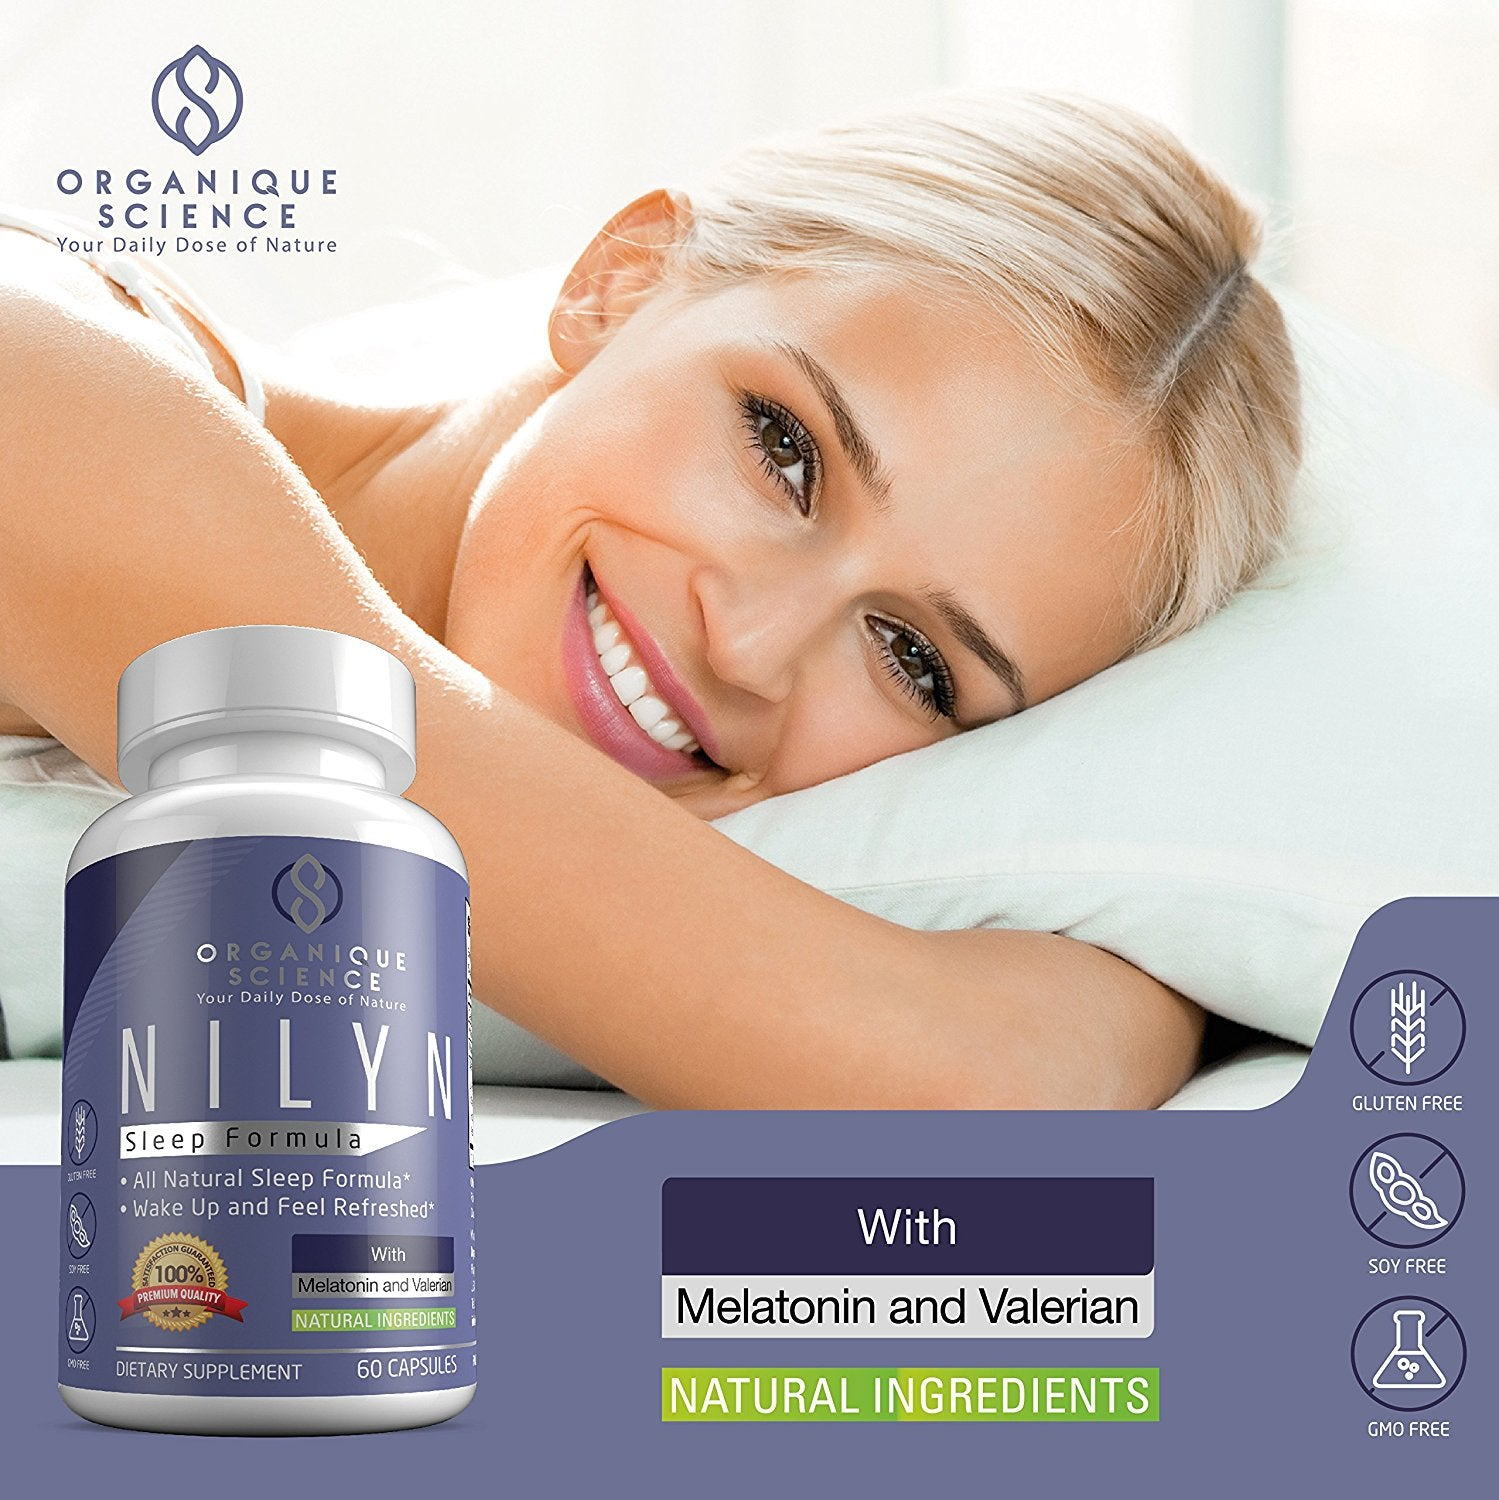 How to Treat Insomnia with Organic Supplements